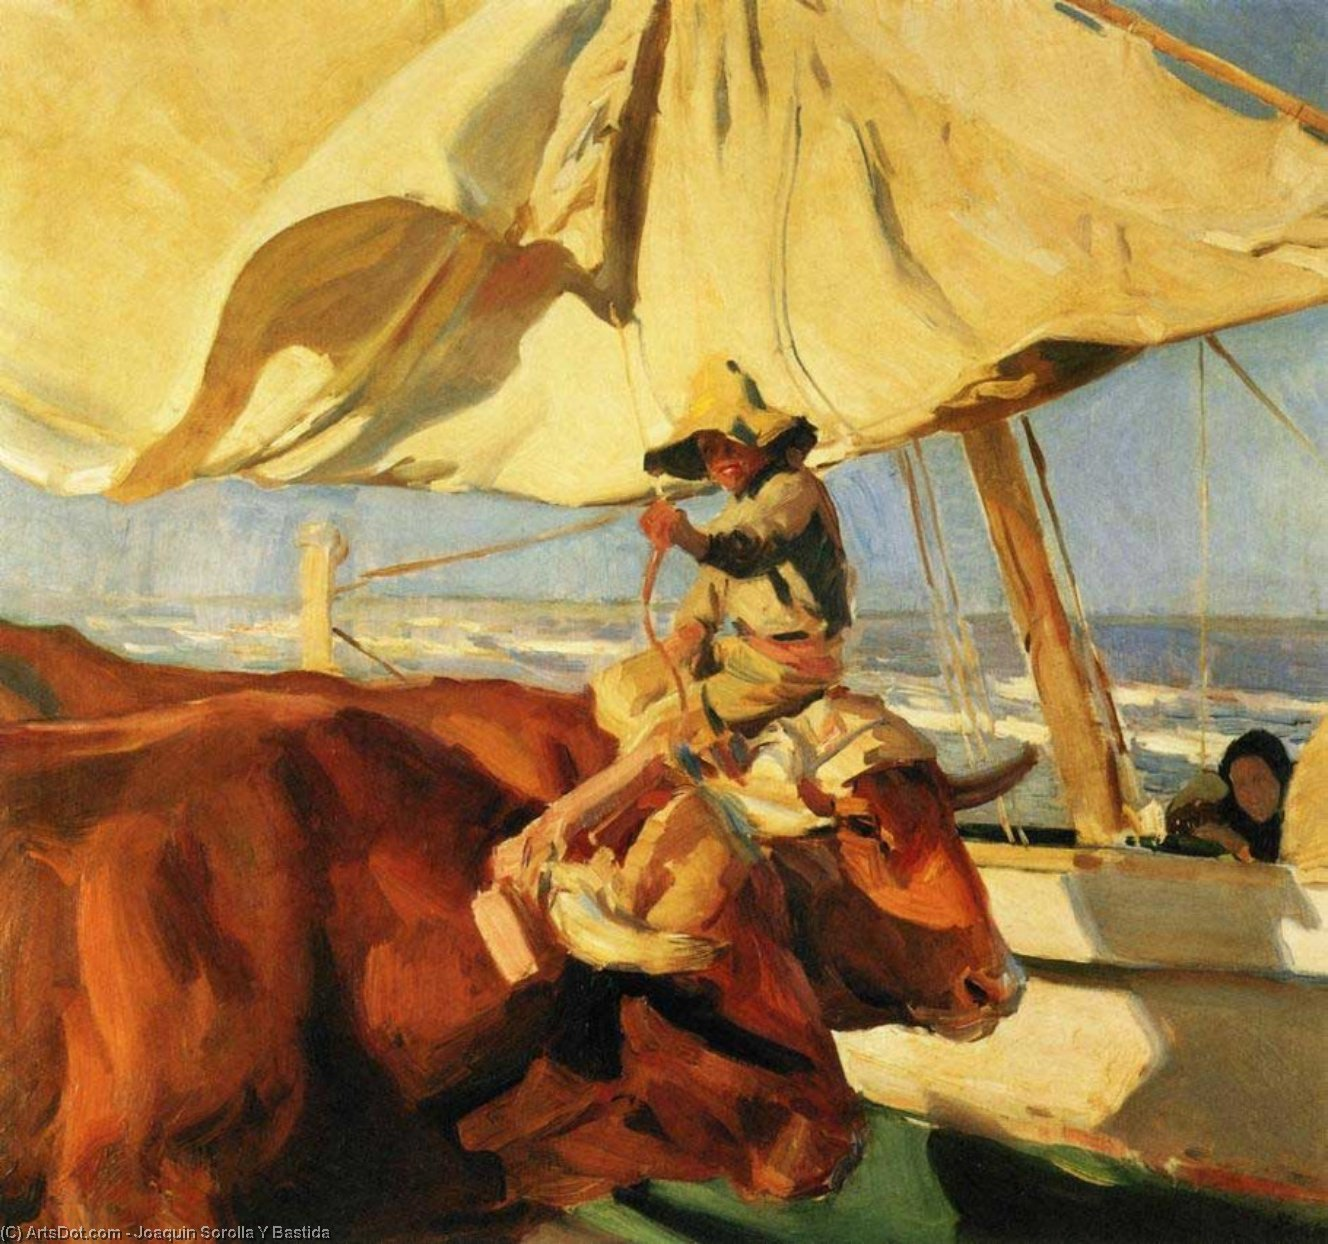 Afternoon Sun, Playa de Valencia, Oil by Joaquin Sorolla Y Bastida (1863-1923, Spain)